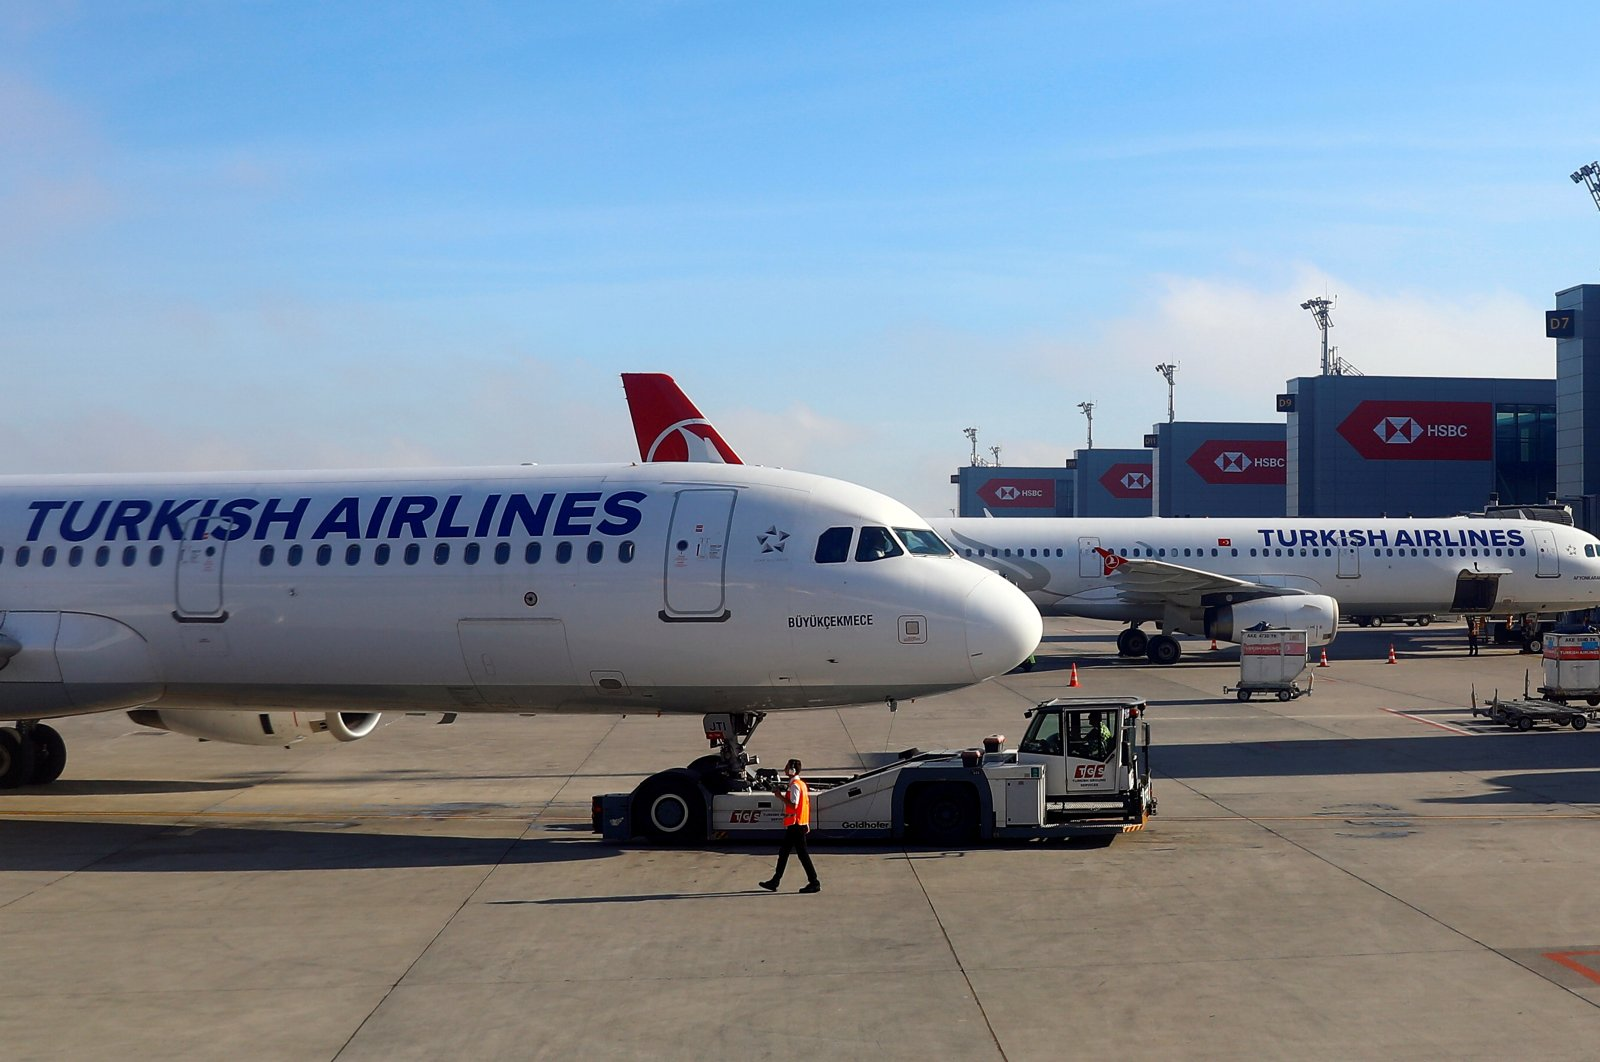 A Turkish Airlines planes sit at Istanbul Airport, Turkey, May 27, 2019. (Reuters Photo)